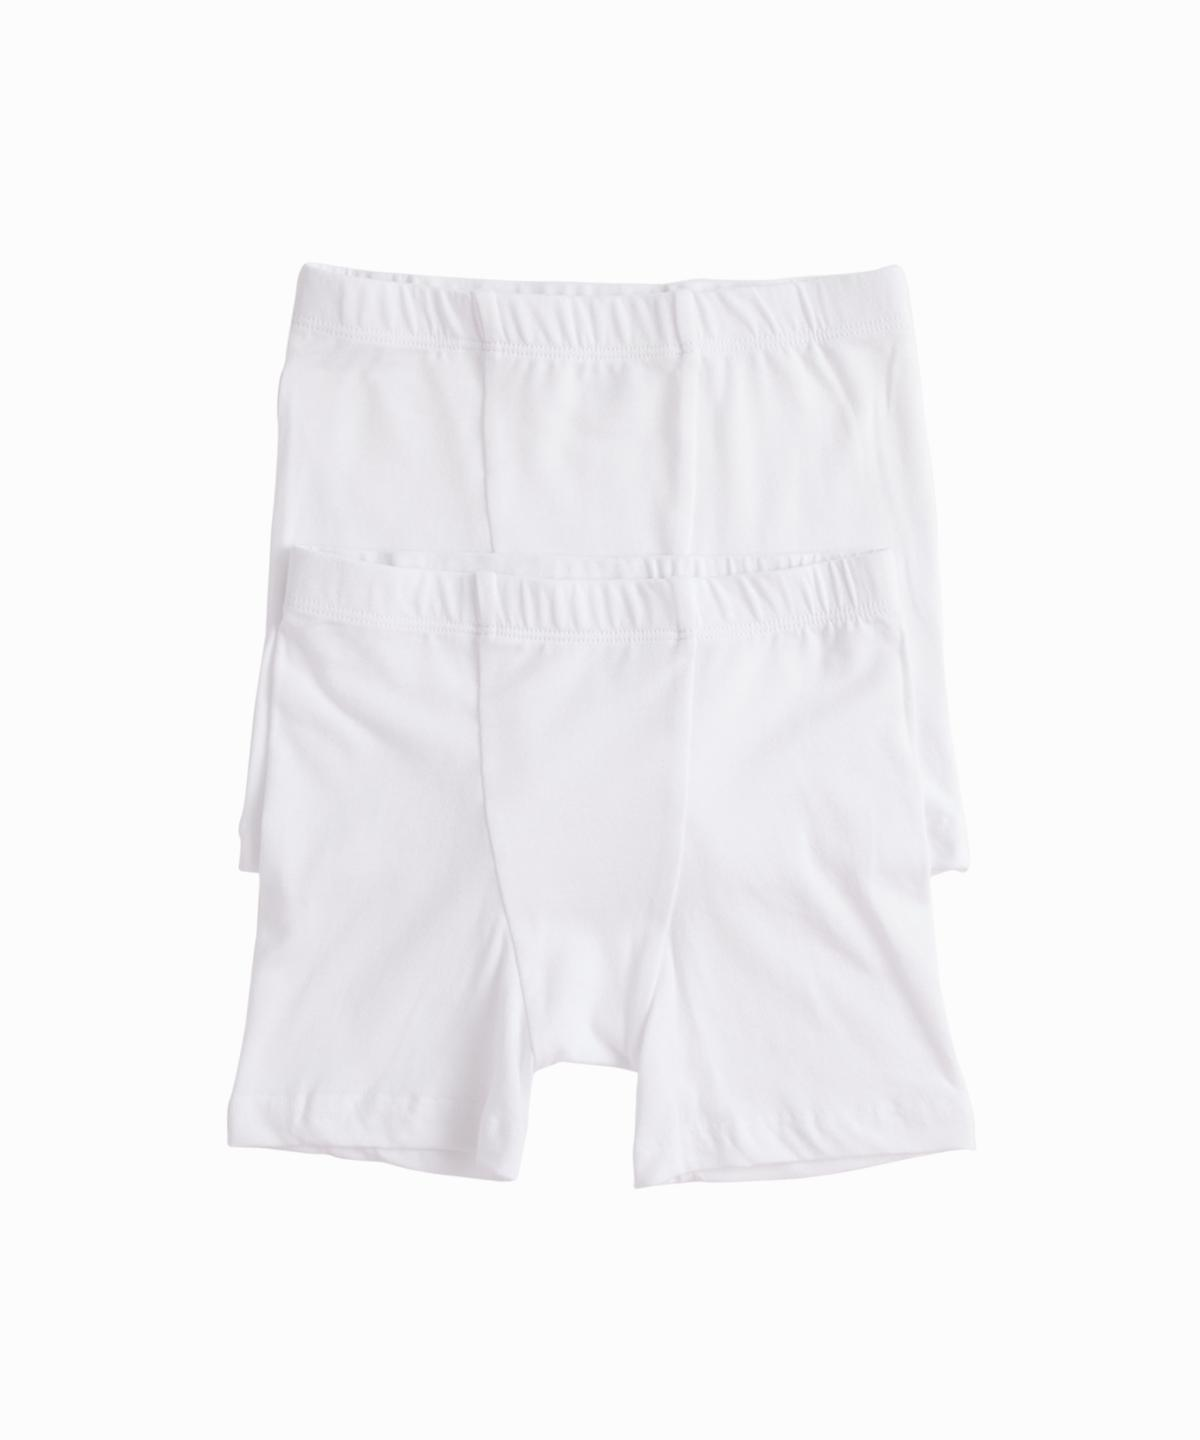 Set of 2 White Boxers